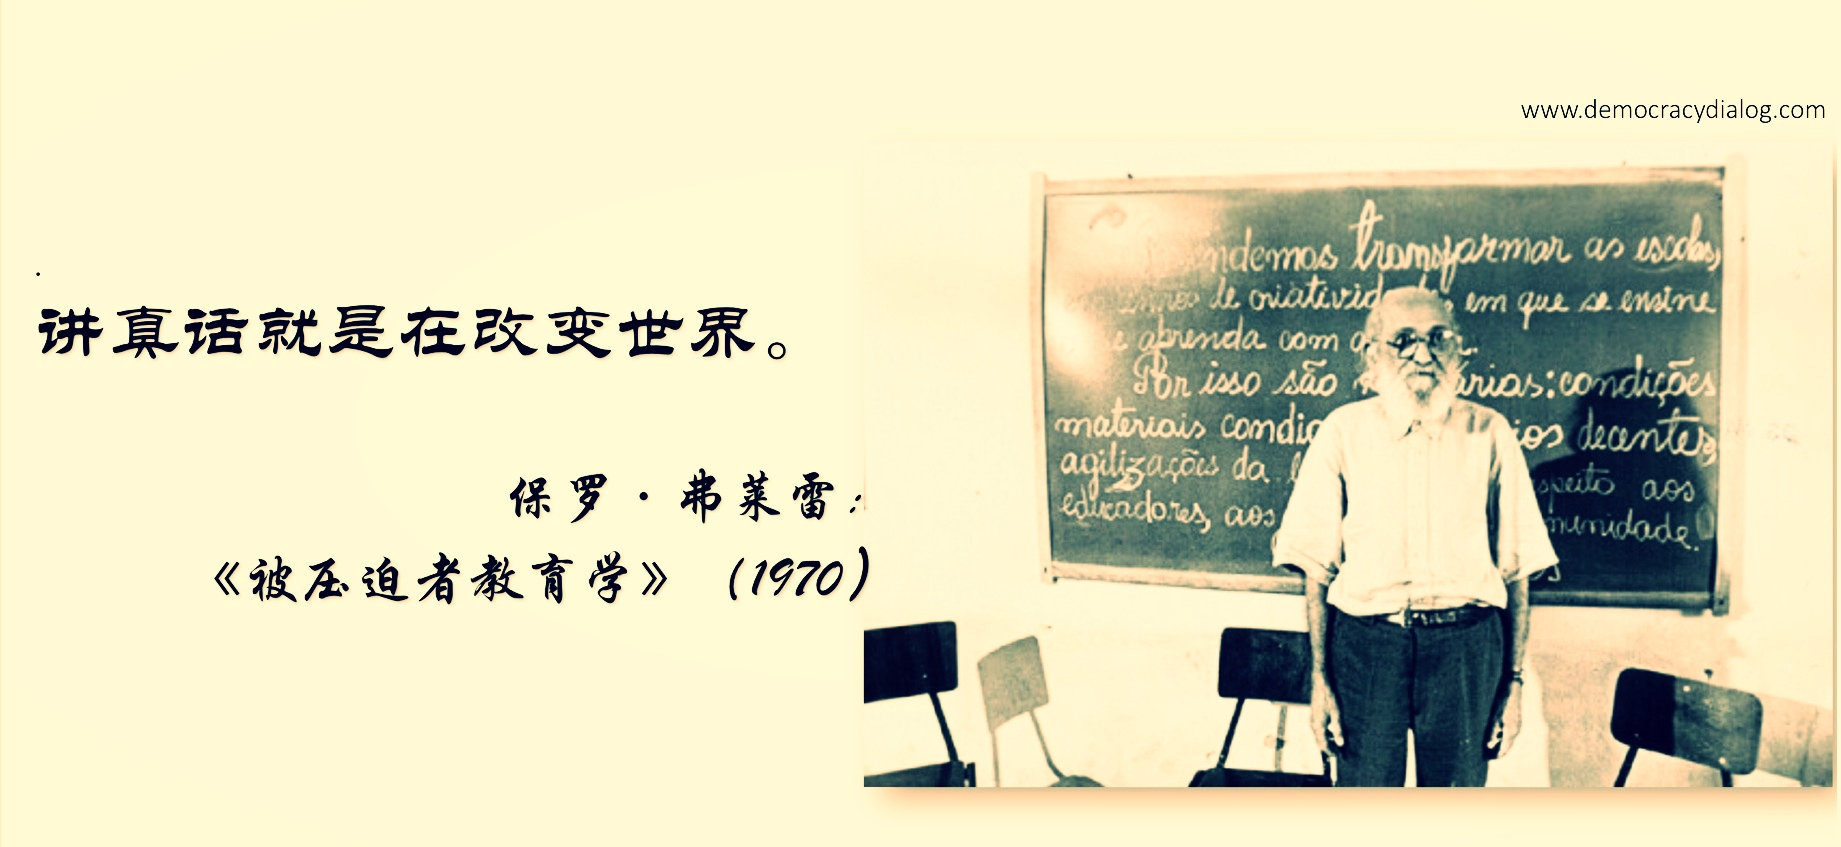 Freire-Chinese